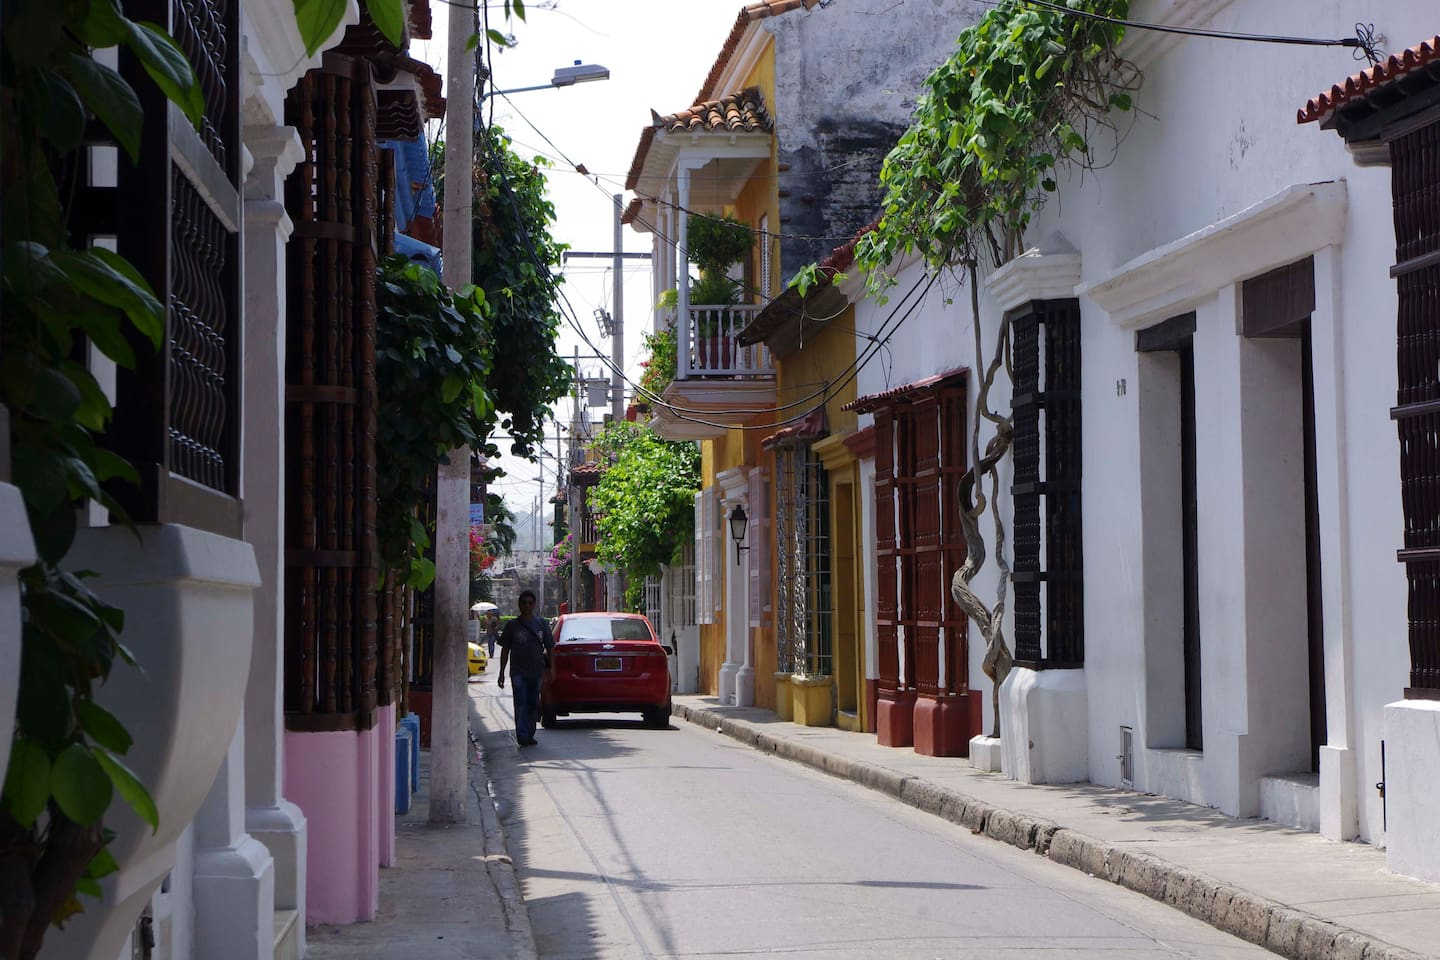 Calle Quero, we are the pink house on the left.